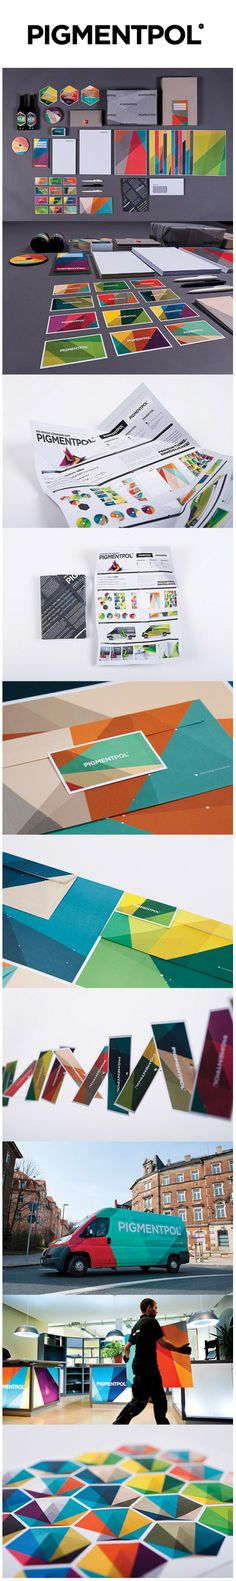 Pigmentpol - I love everything about this branding, it's just so appealing, the texture, colourful but not overdone